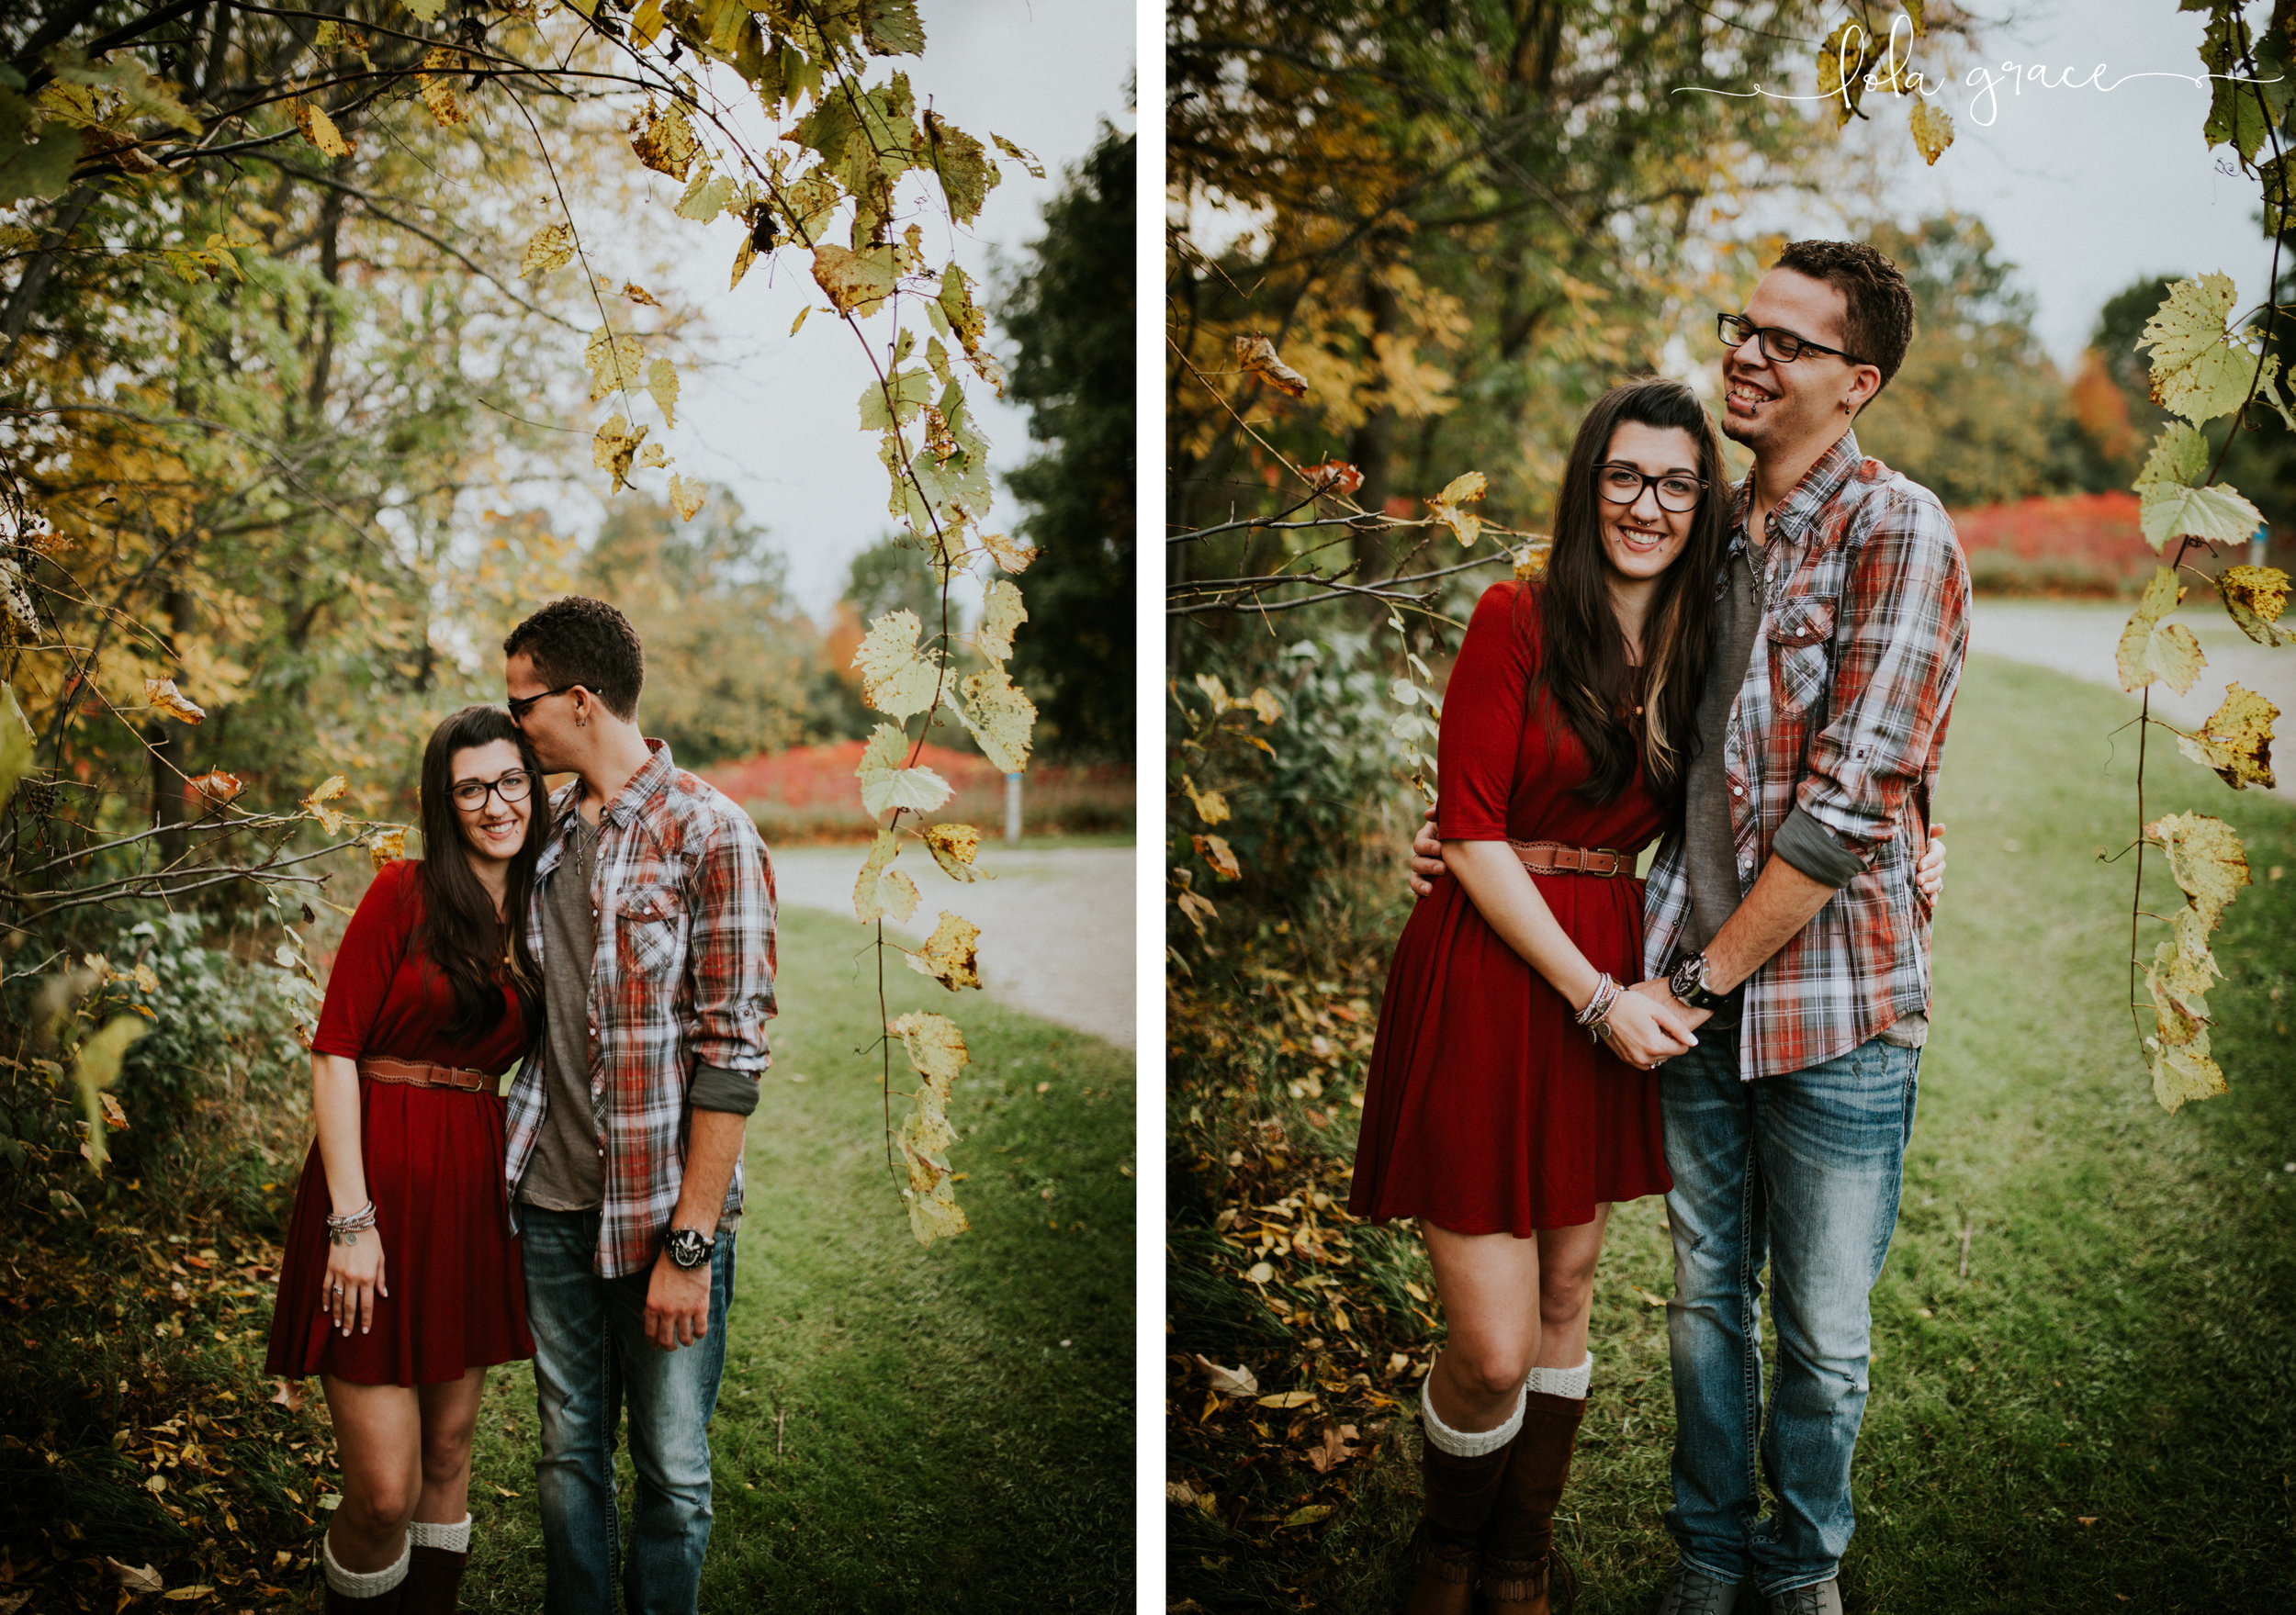 lola-grace-photography-chelsea-jesse-engagement-photos-19.jpg